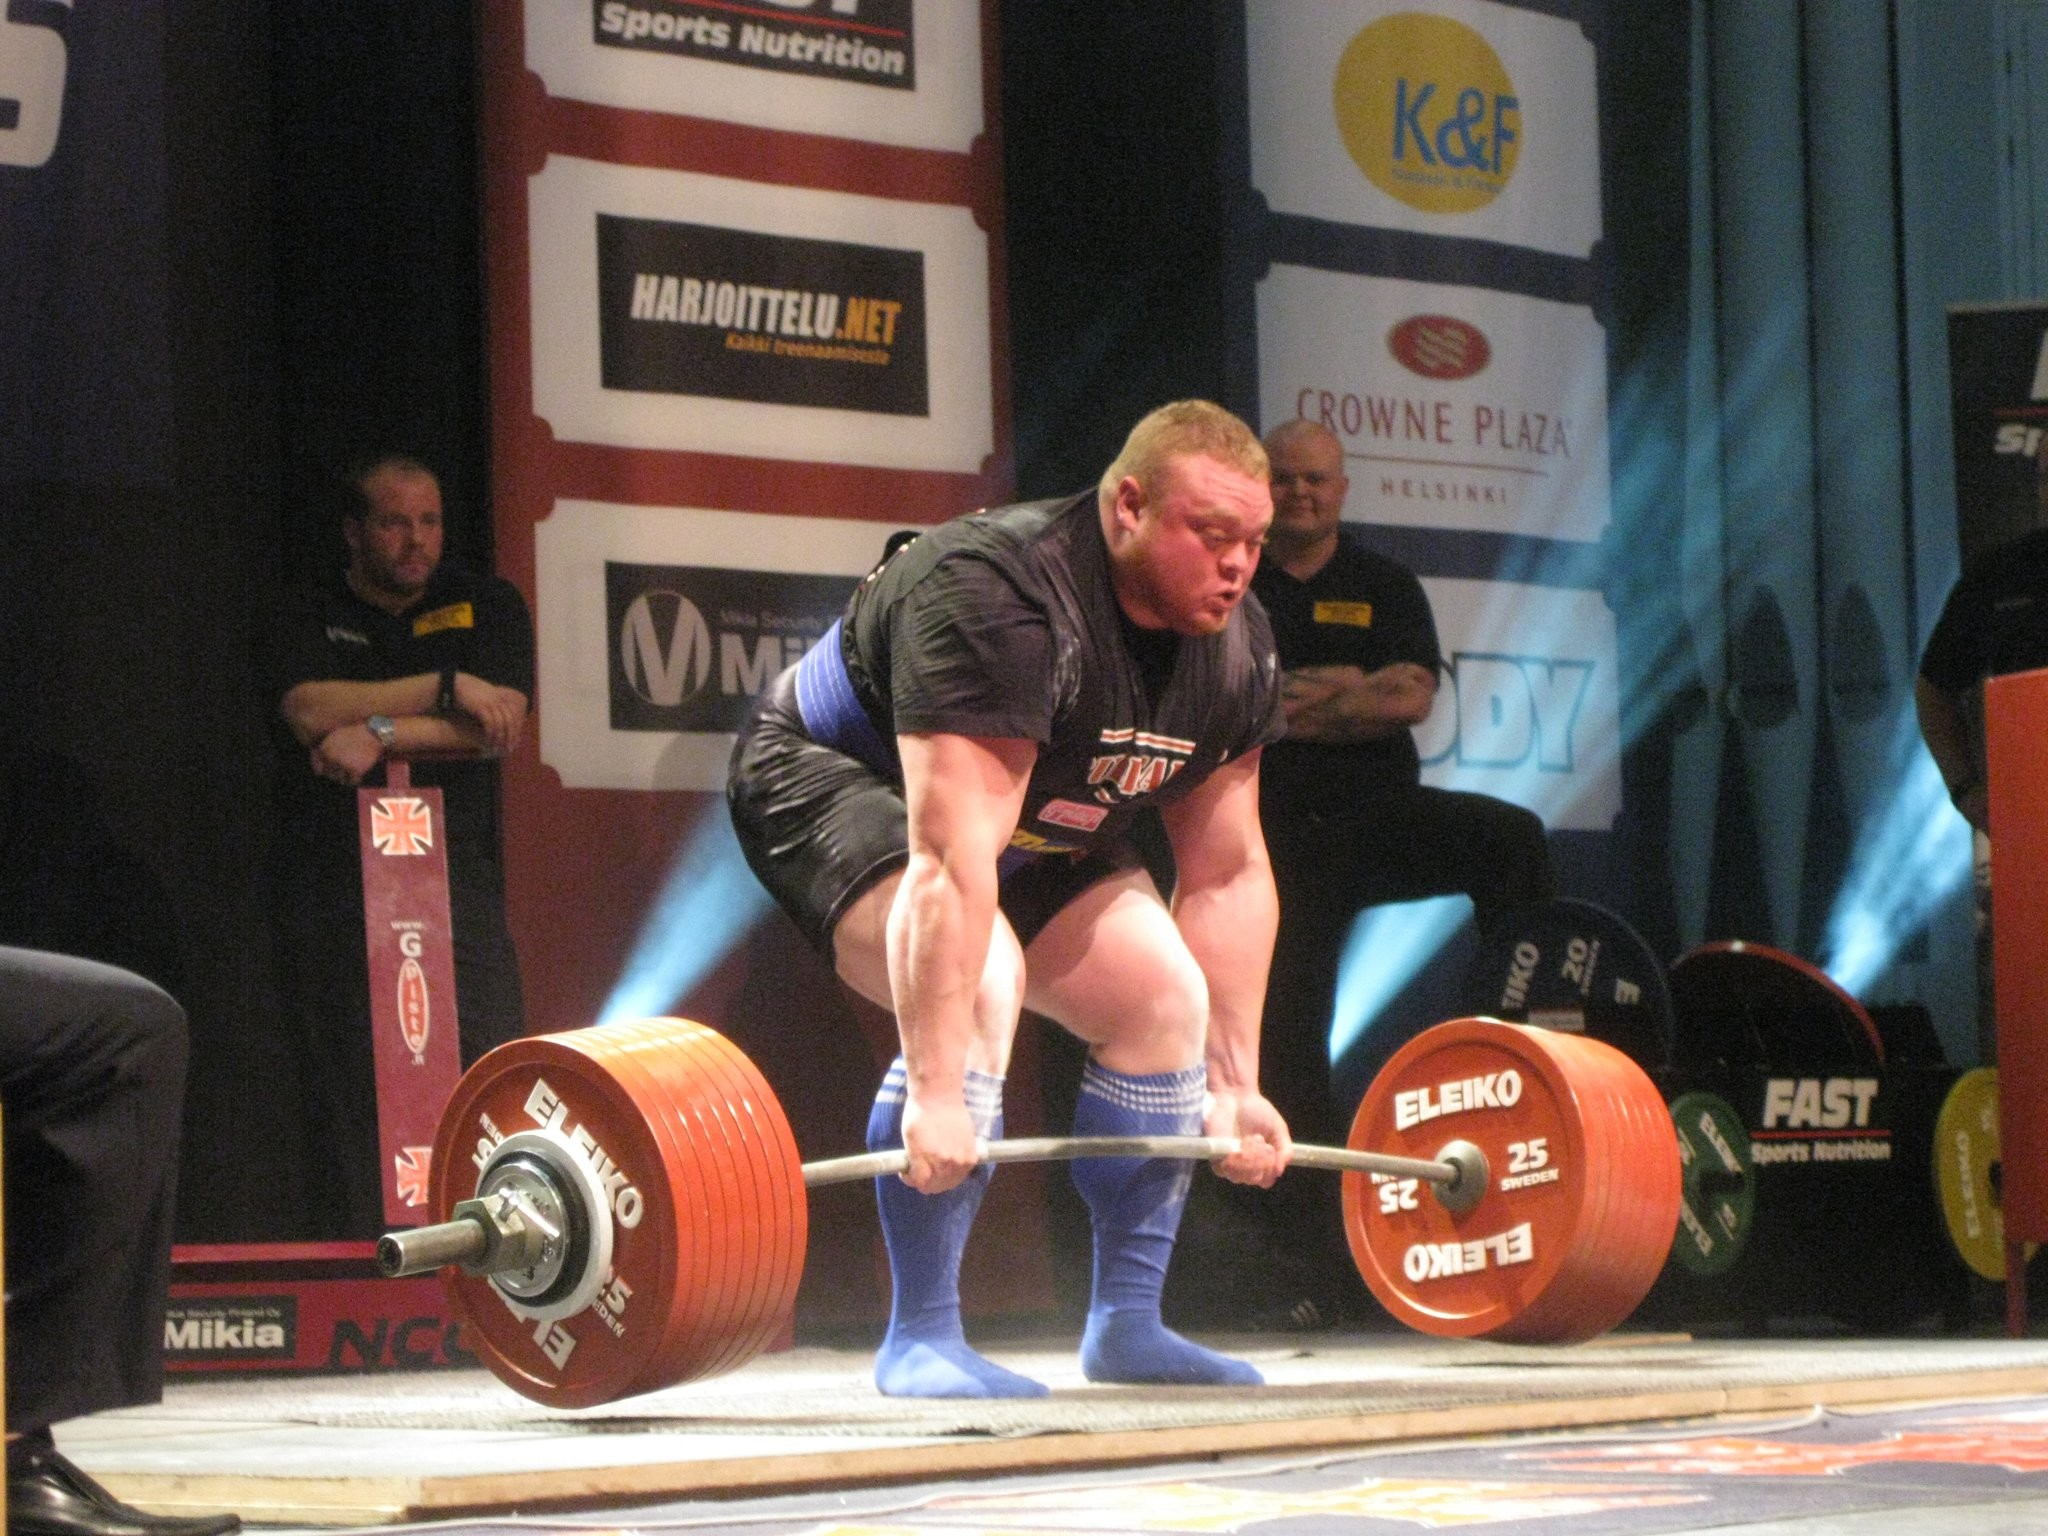 The world record deadlift of 1015 pounds, done by Benedikt Magnusson, was  performed raw